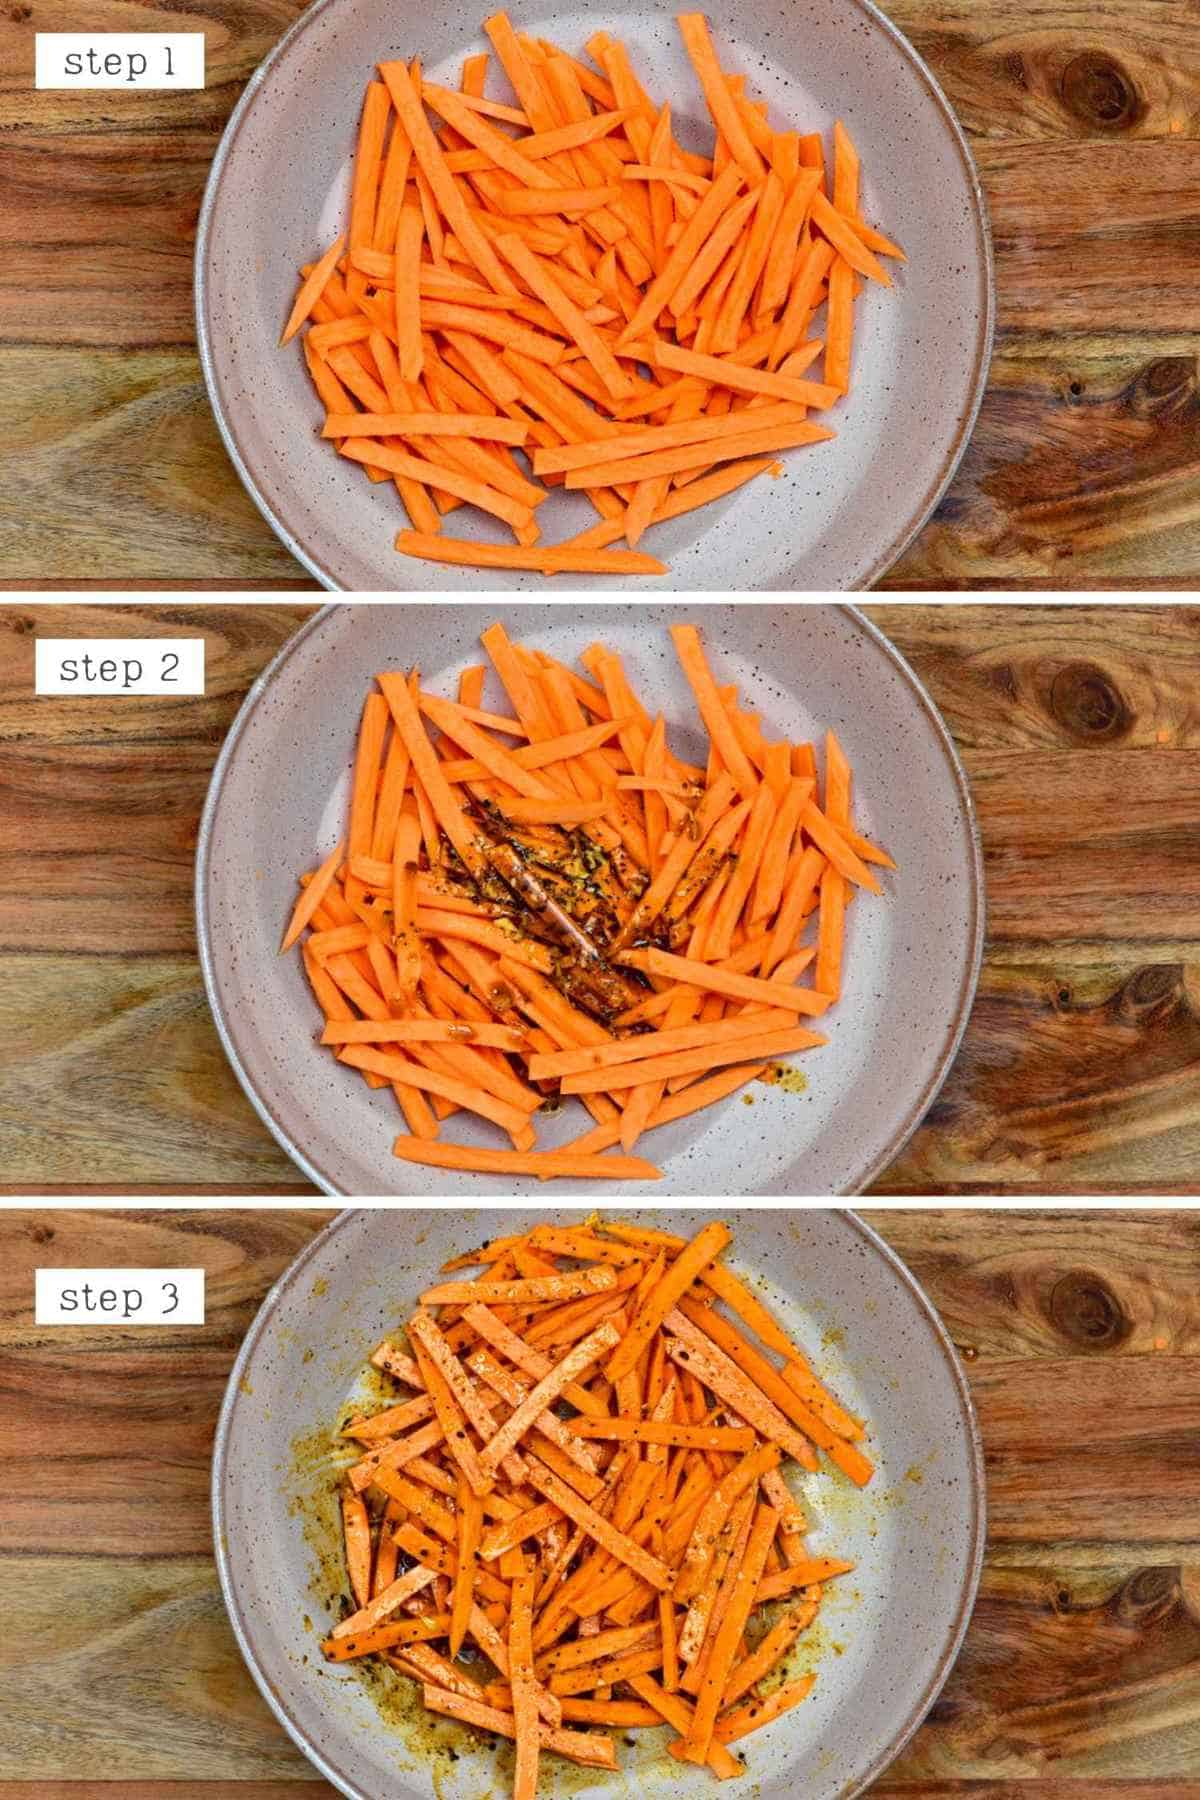 Steps for mixing sweet potato fries with spices